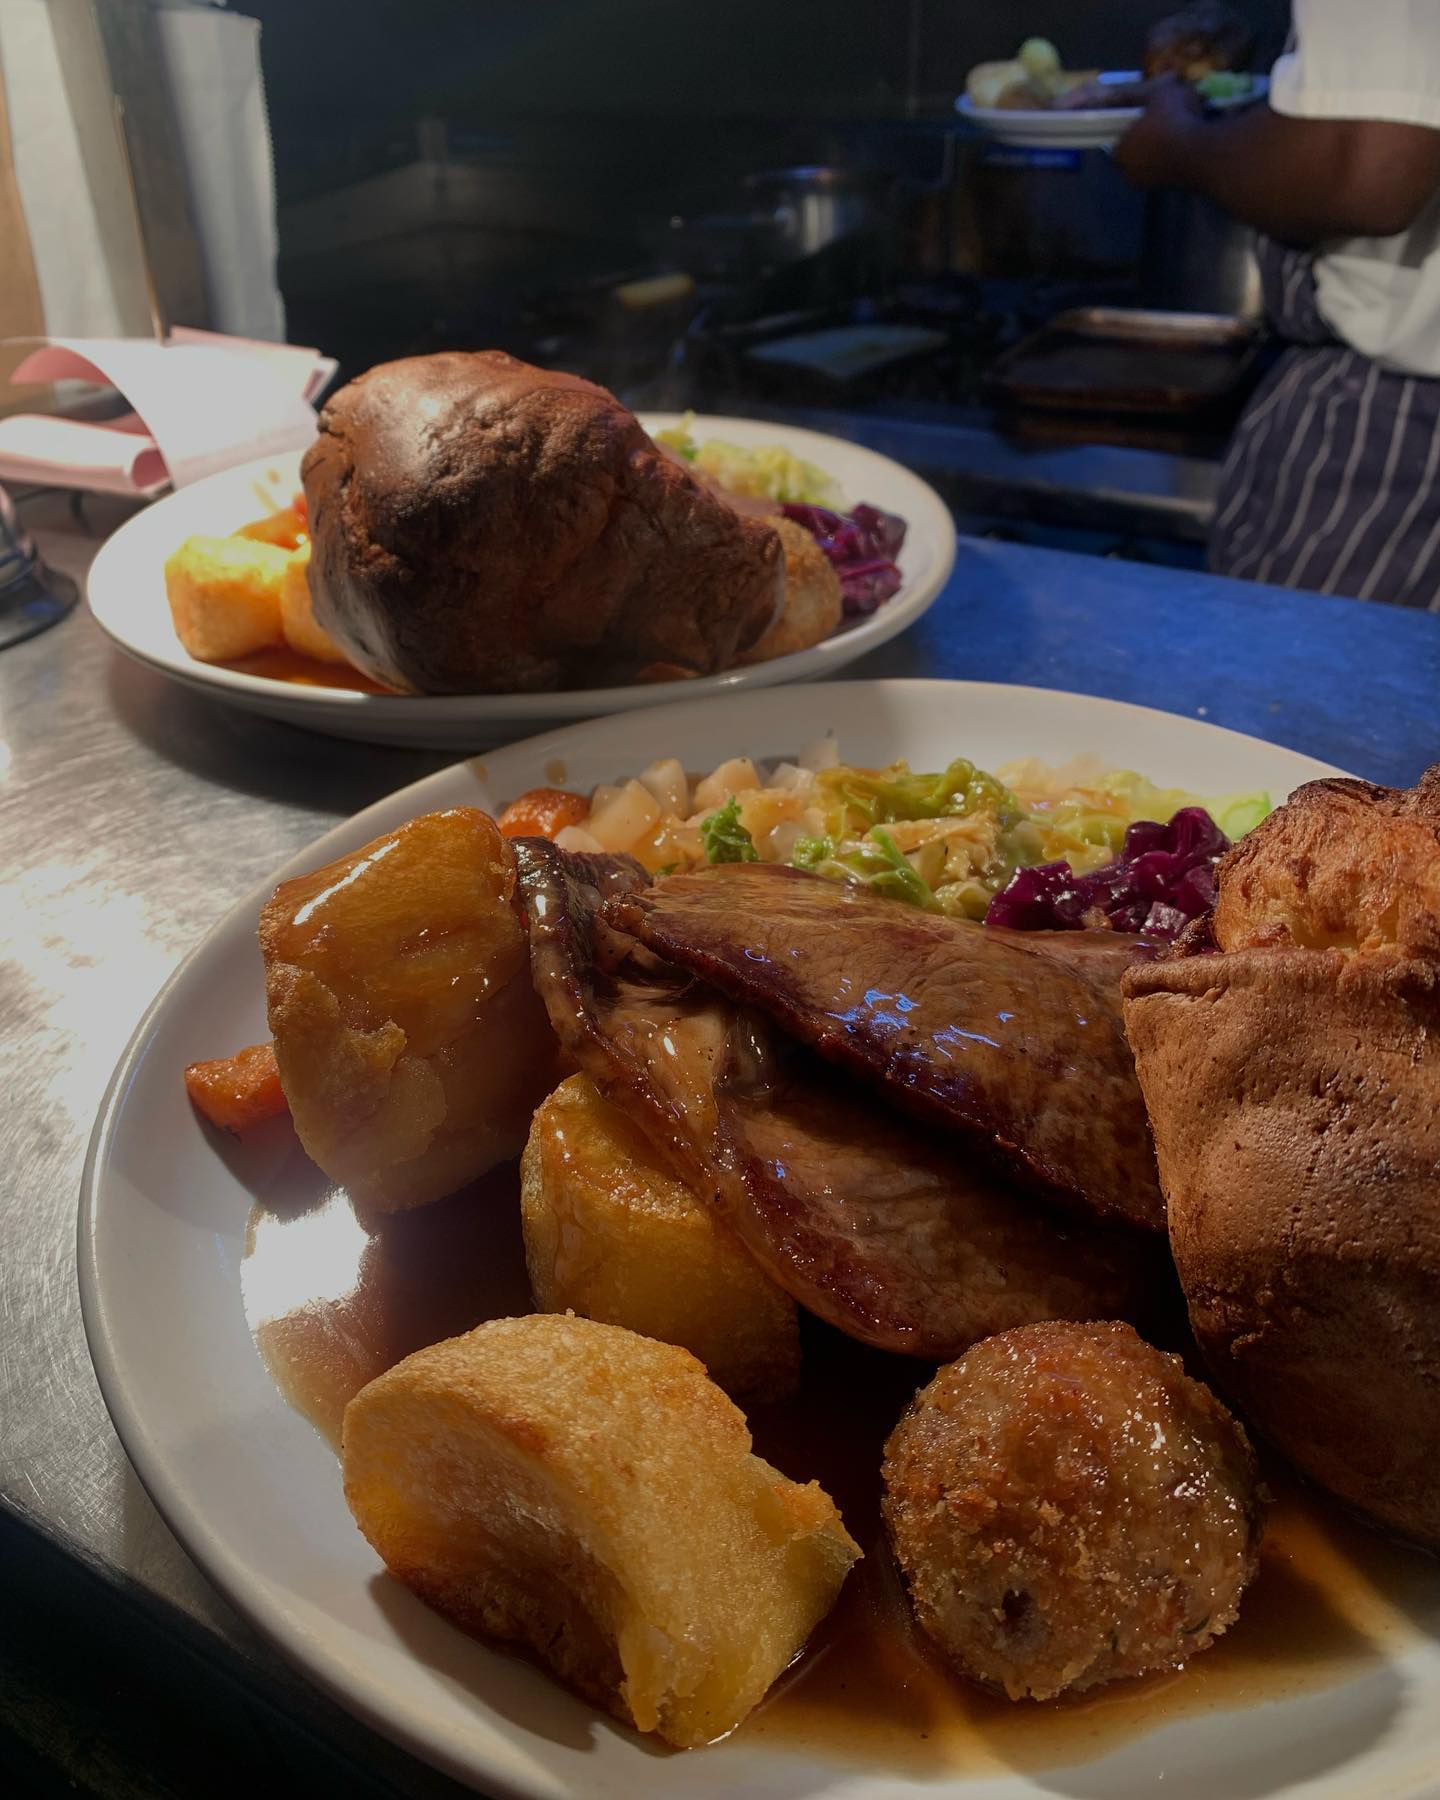 Come on down and try our Sunday roasts!! Veggie and vegan options available. Why not pair it with a Bloody Mary🍹